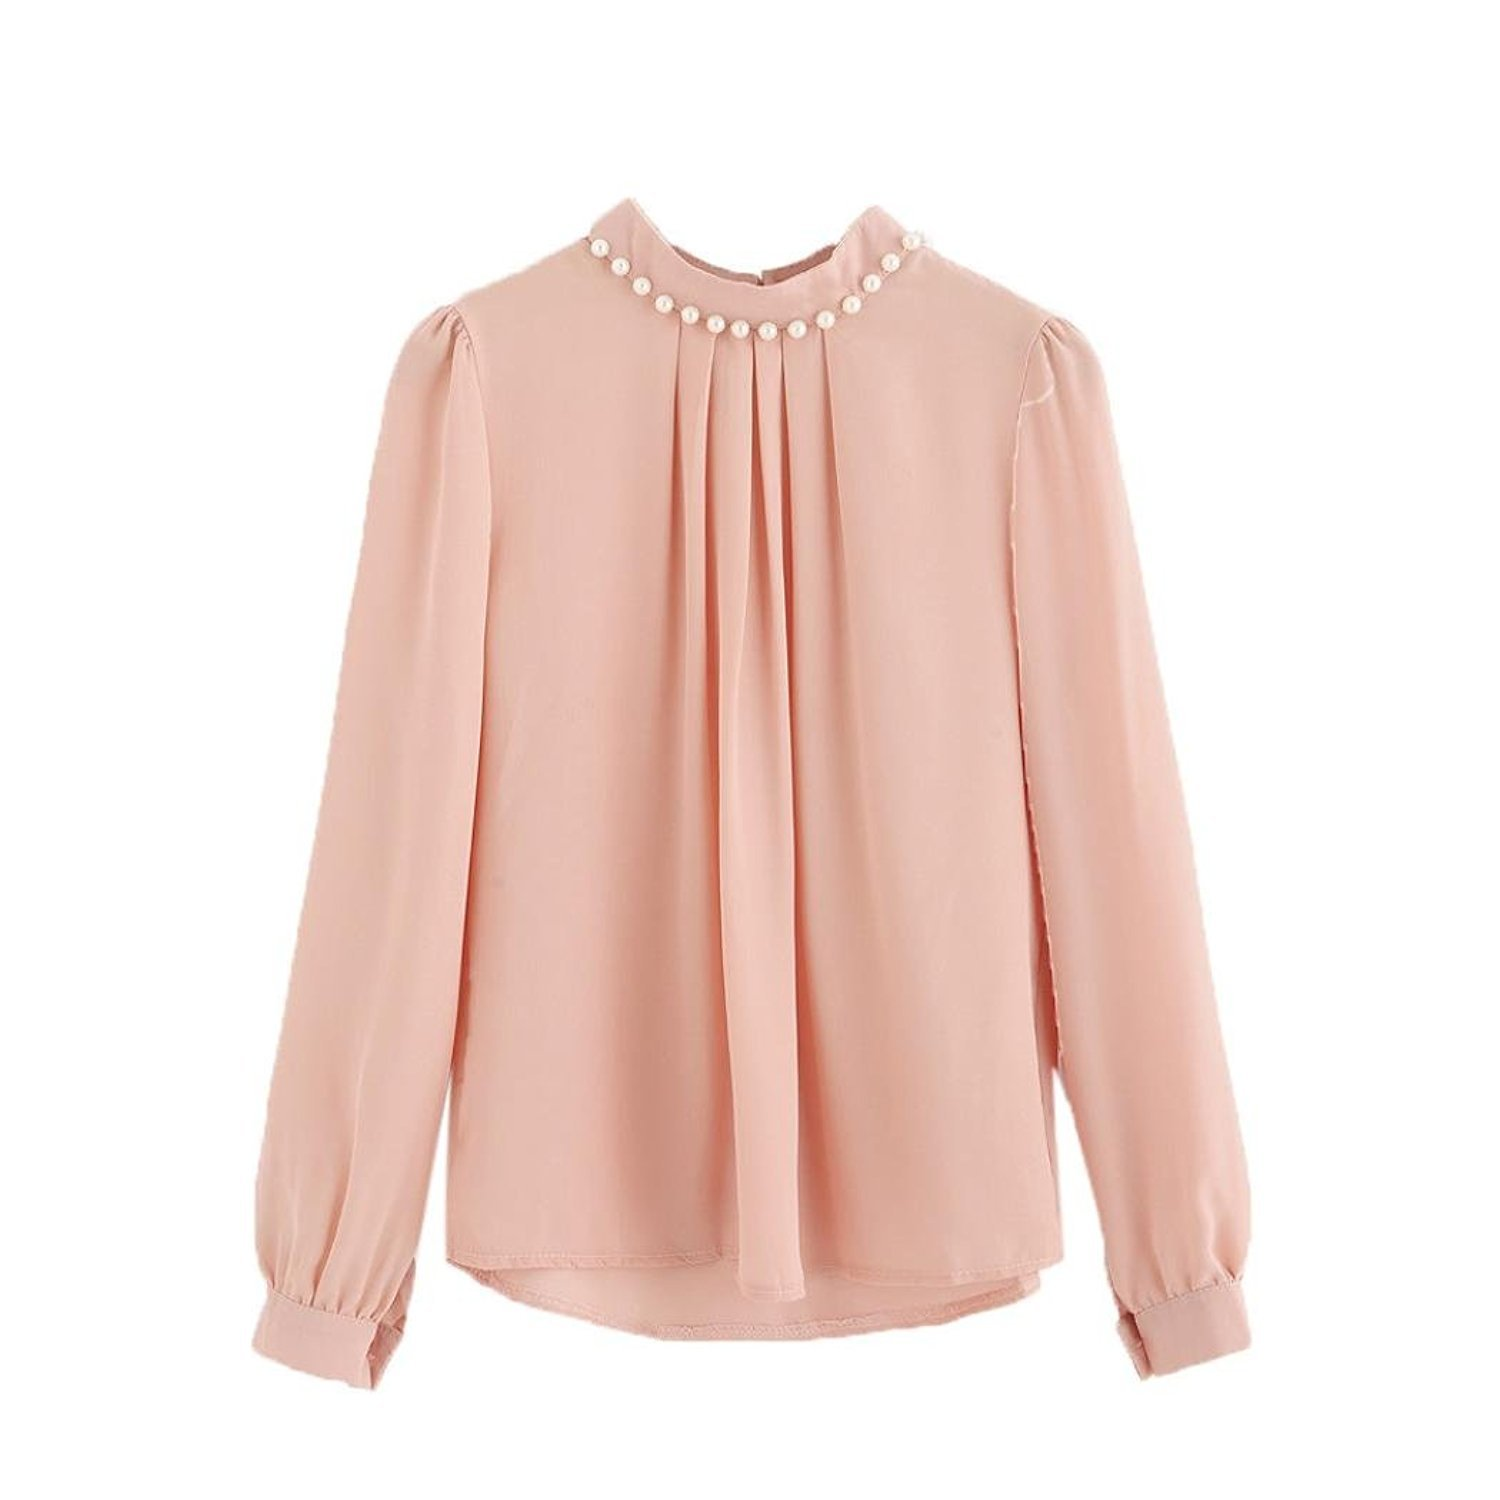 Autumn& Winter Clothing, Fulltime(TM) Pearl Chiffon Blouse Work Office Shirts XYM70927902